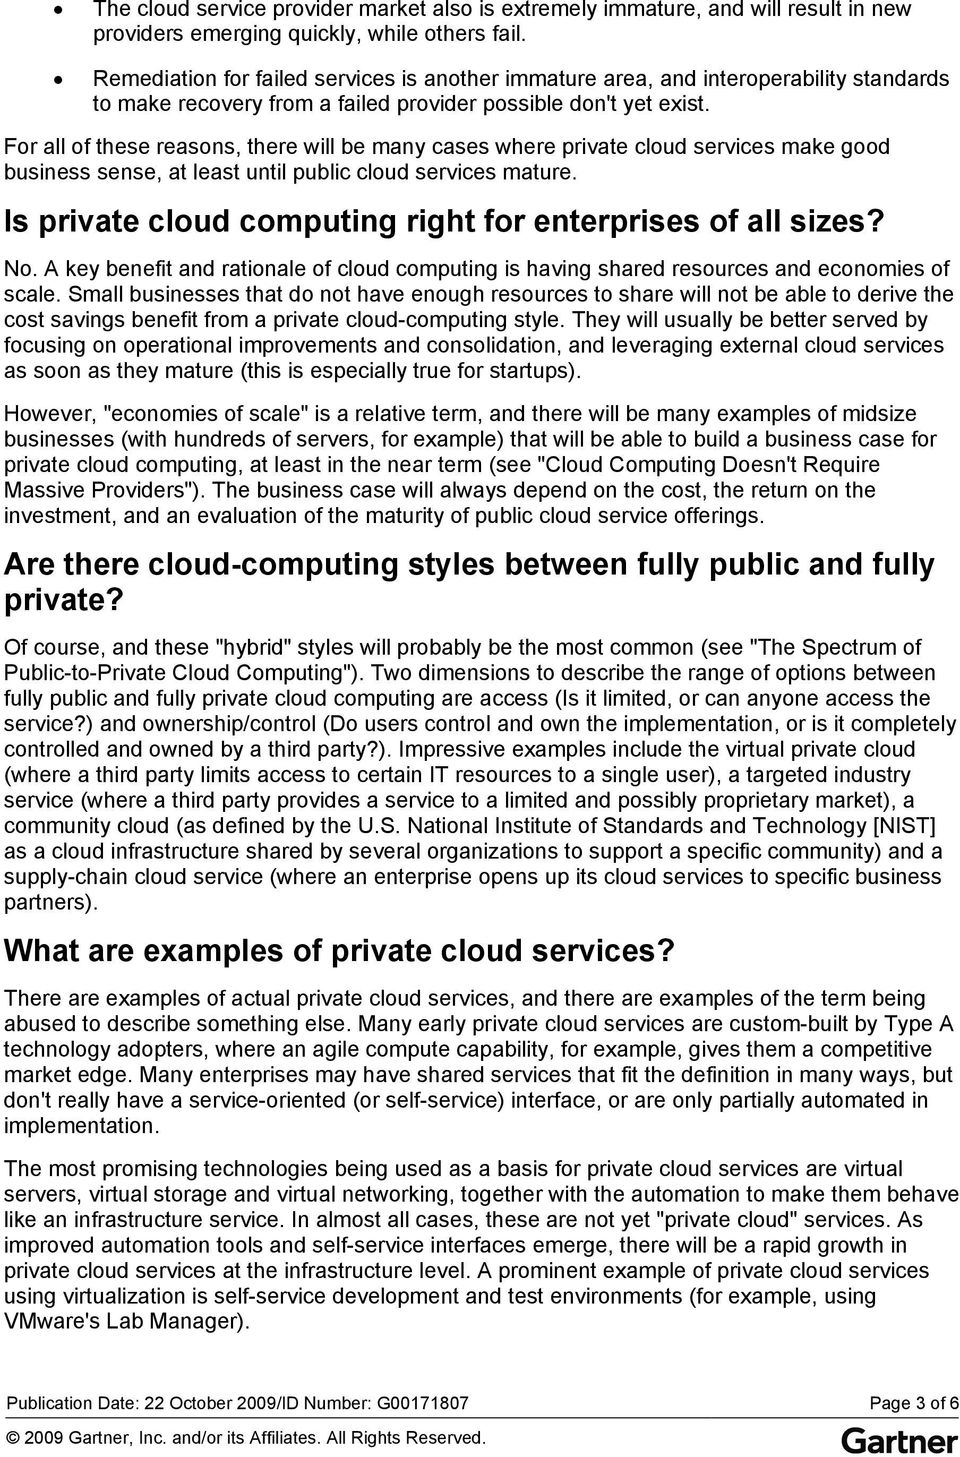 For all of these reasons, there will be many cases where private cloud services make good business sense, at least until public cloud services mature.